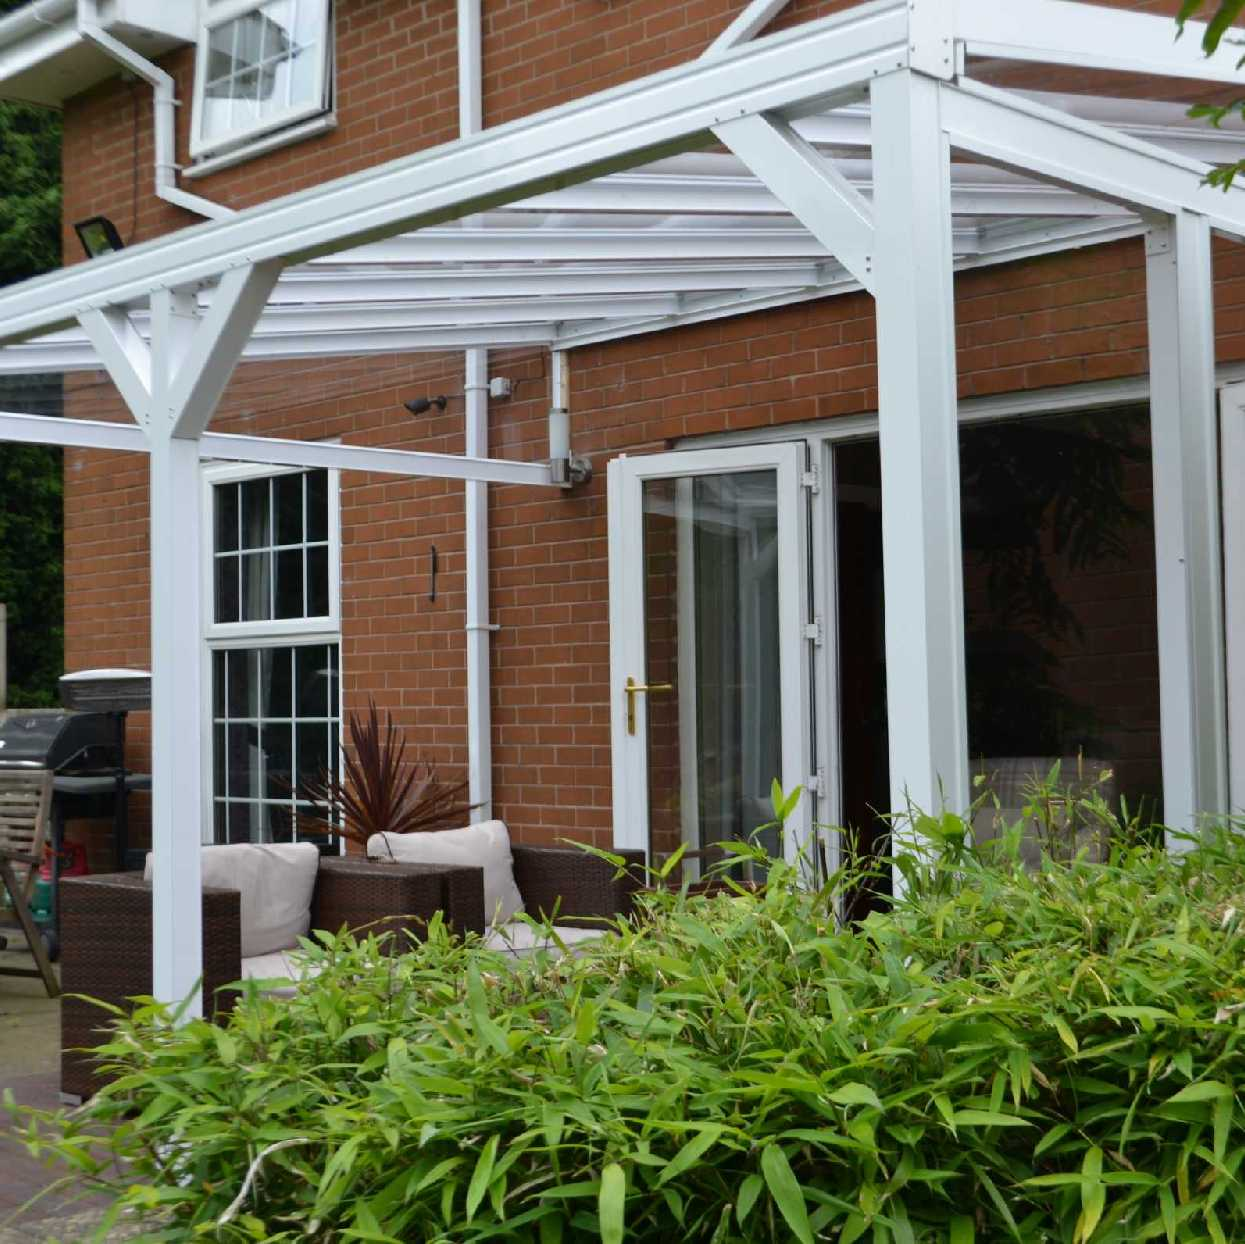 Omega Smart White Lean-To Canopy with 6mm Glass Clear Plate Polycarbonate Glazing - 9.8m (W) x 1.5m (P), (5) Supporting Posts from Omega Build